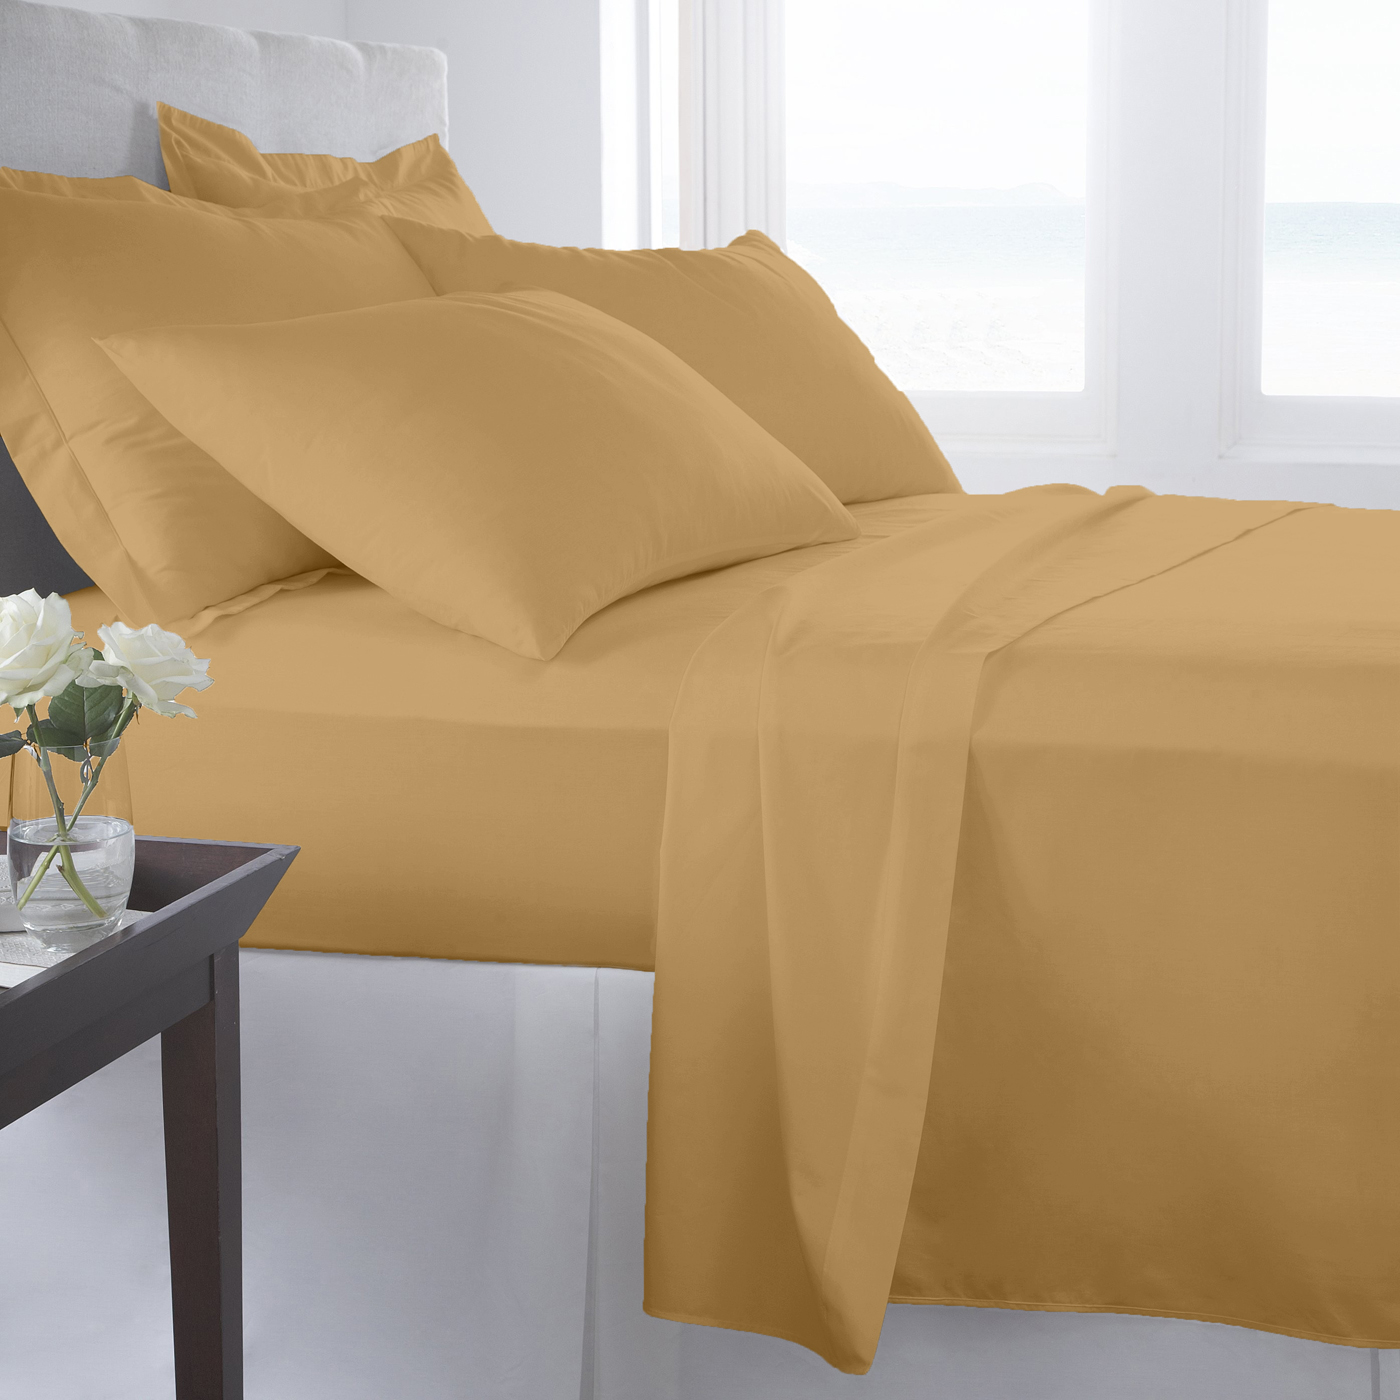 Supreme Super Soft 3 Piece Bed Sheet Set Deep Pocket Bedding - Twin Size Ivory